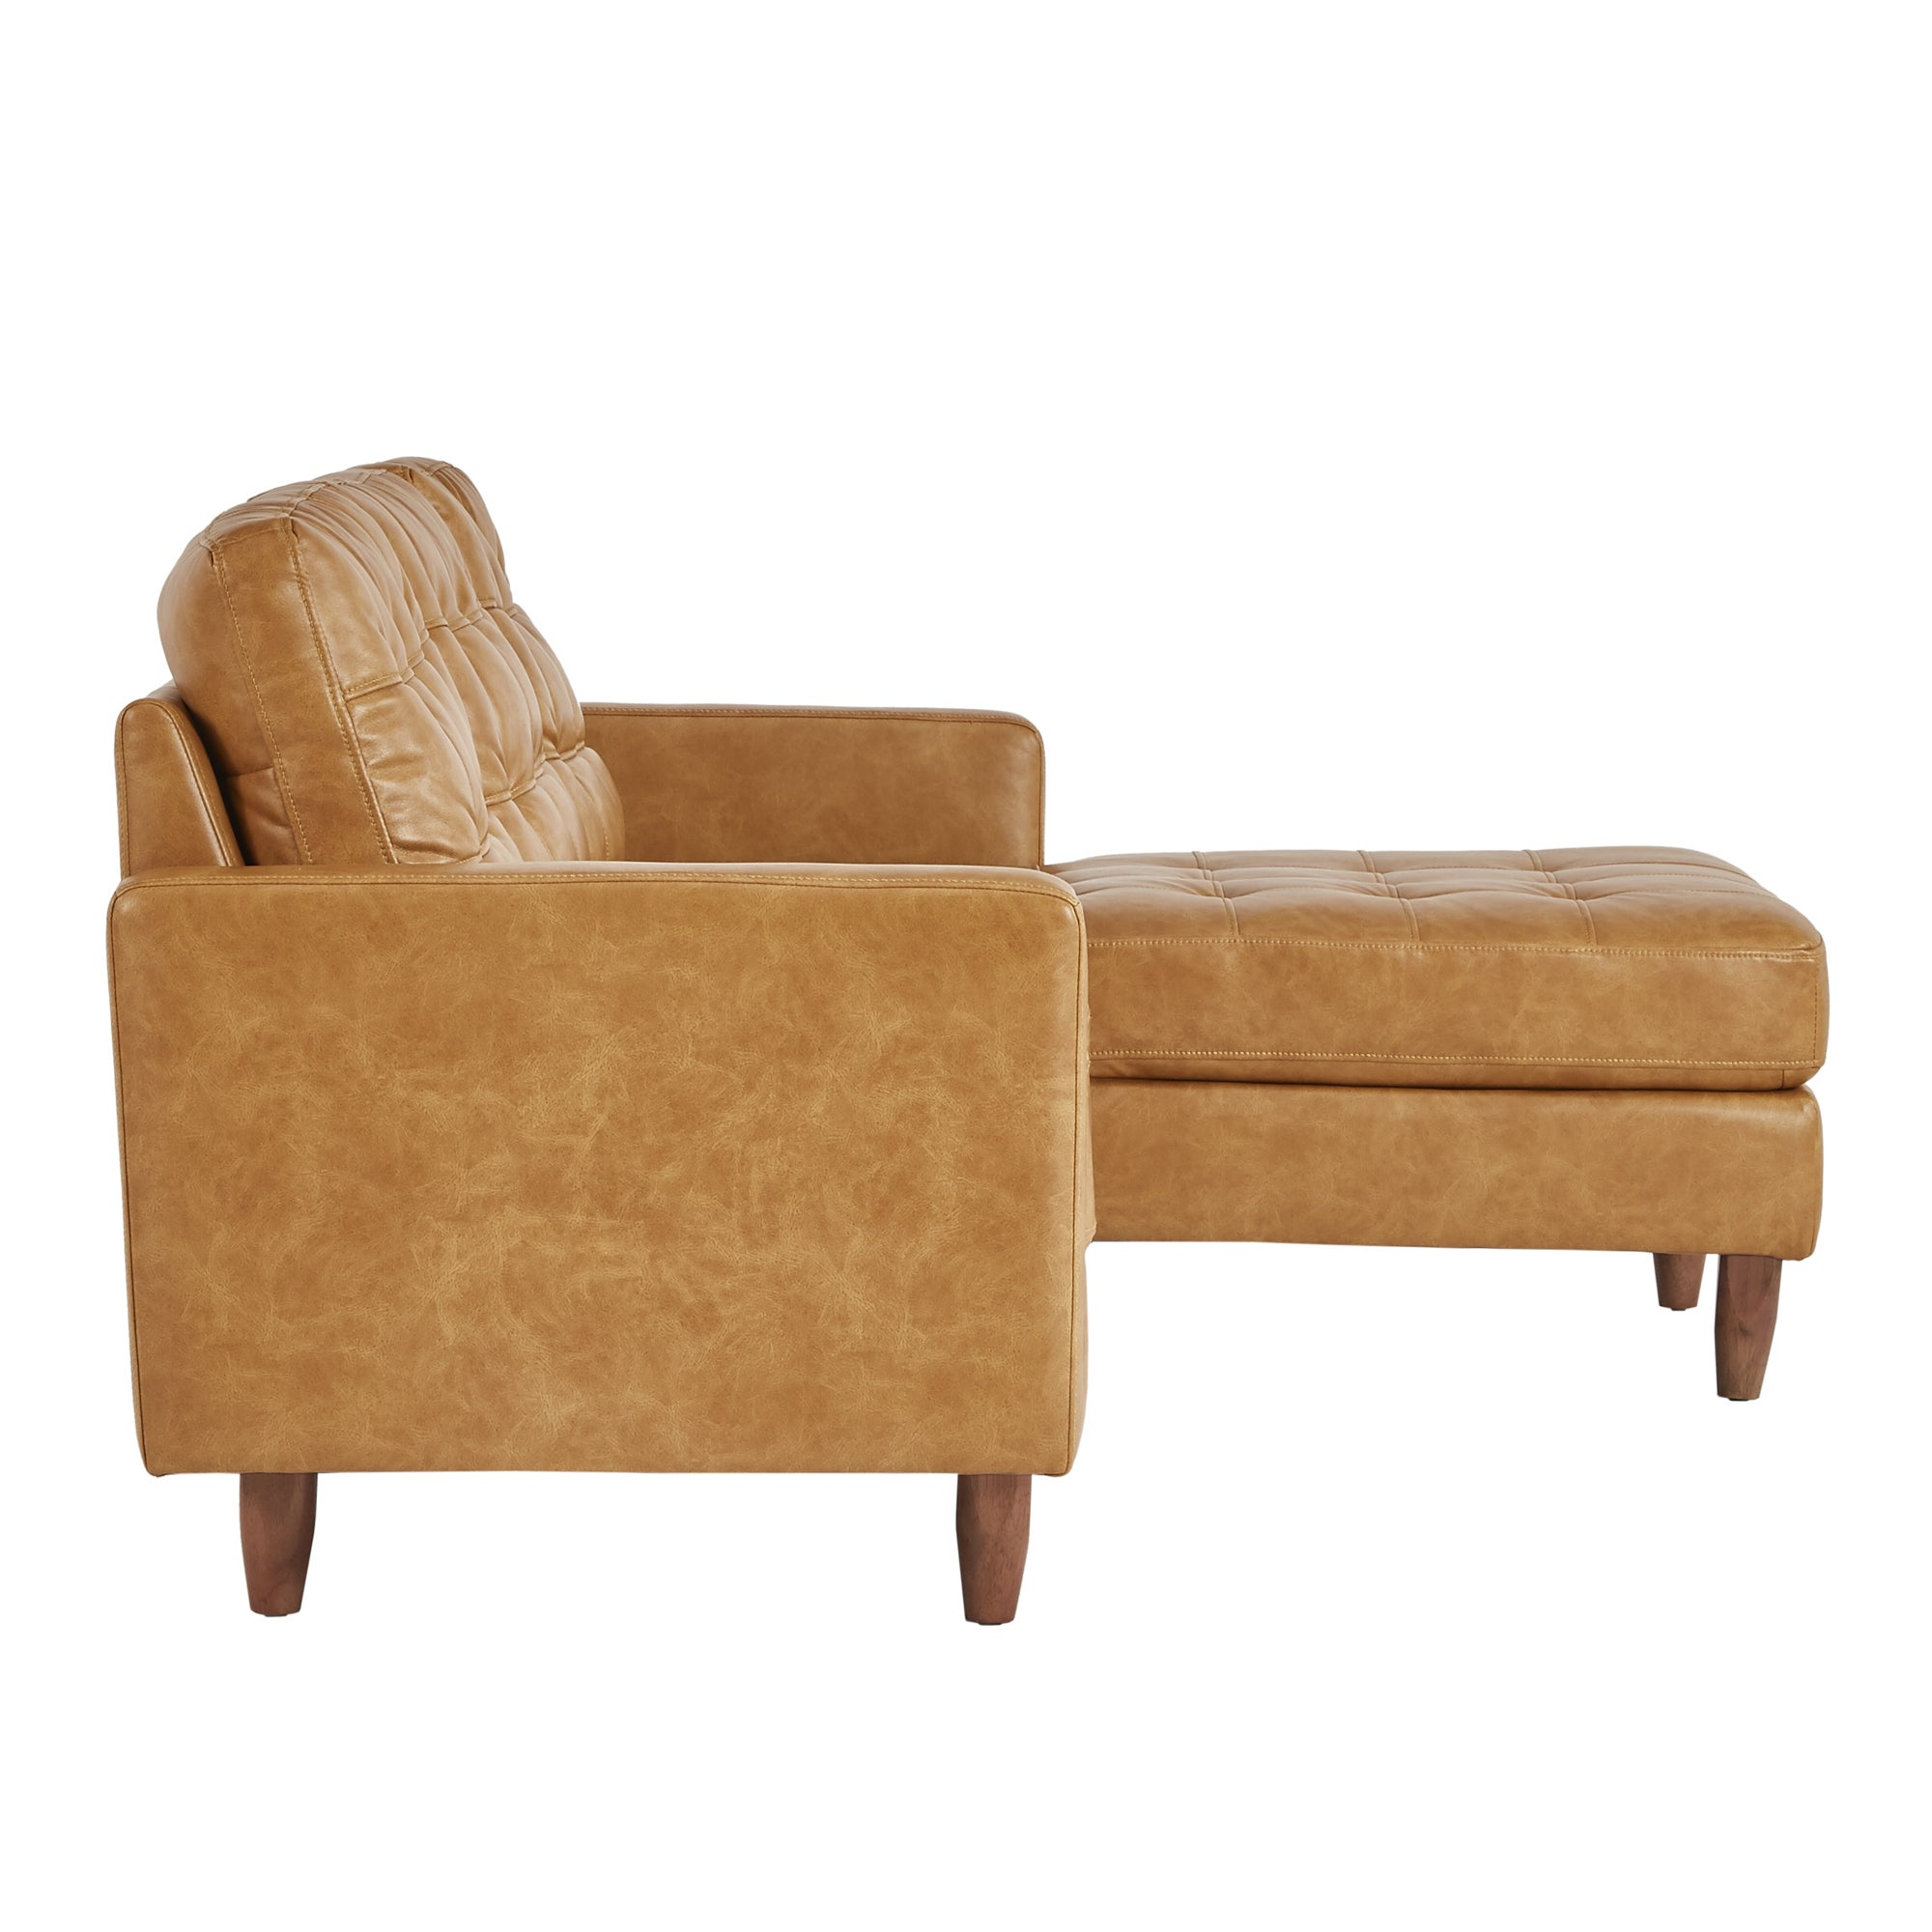 Odin Caramel Leather Gel Sofa Sectional with Chaise by iNSPIRE Q Modern -  Free Shipping Today - Overstock.com - 25688374